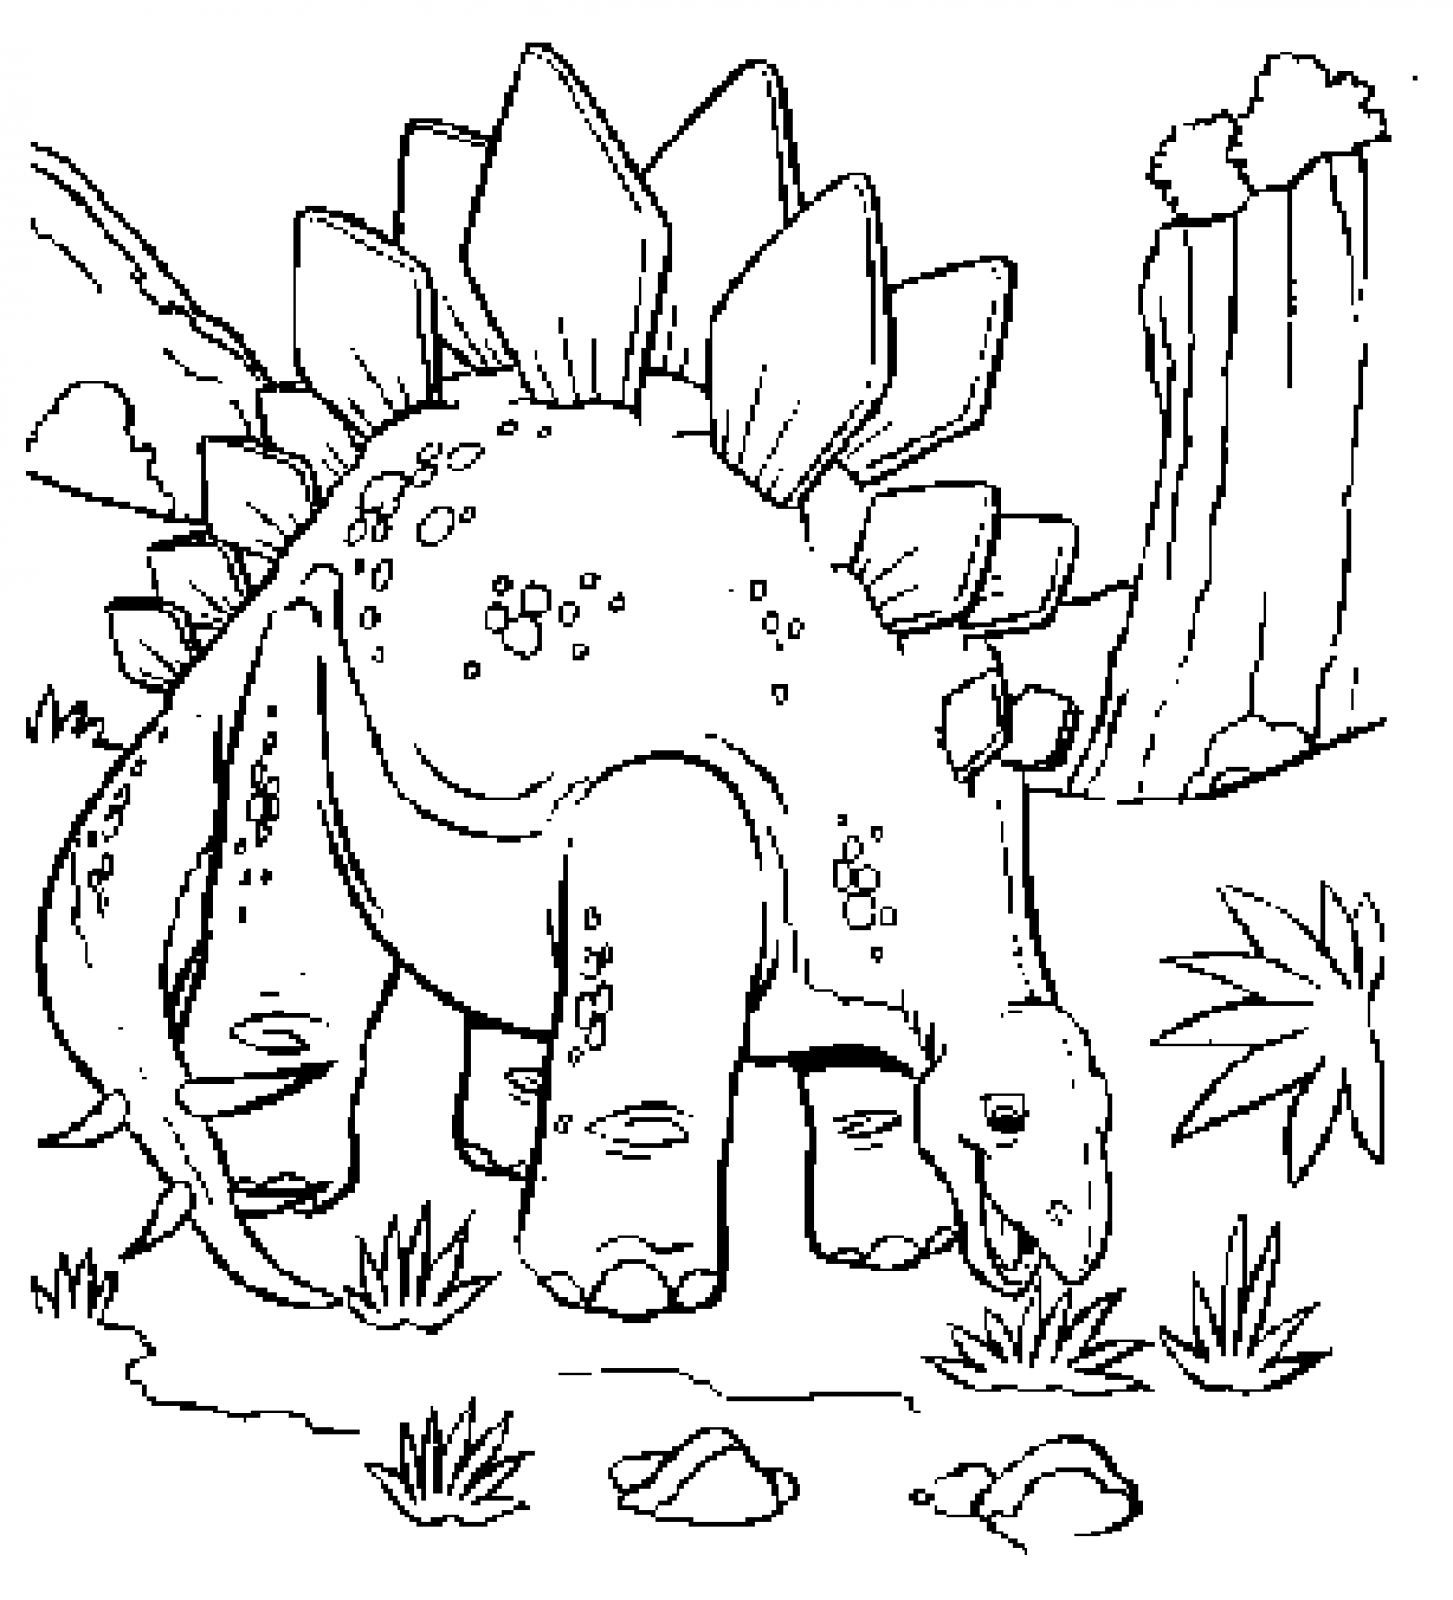 dinosaurs-pictures-for-kids-coloring-of-dinosaurs-pictures-for-kids-coloring Dinosaurs Pictures for Kids Coloring Dinosaurs